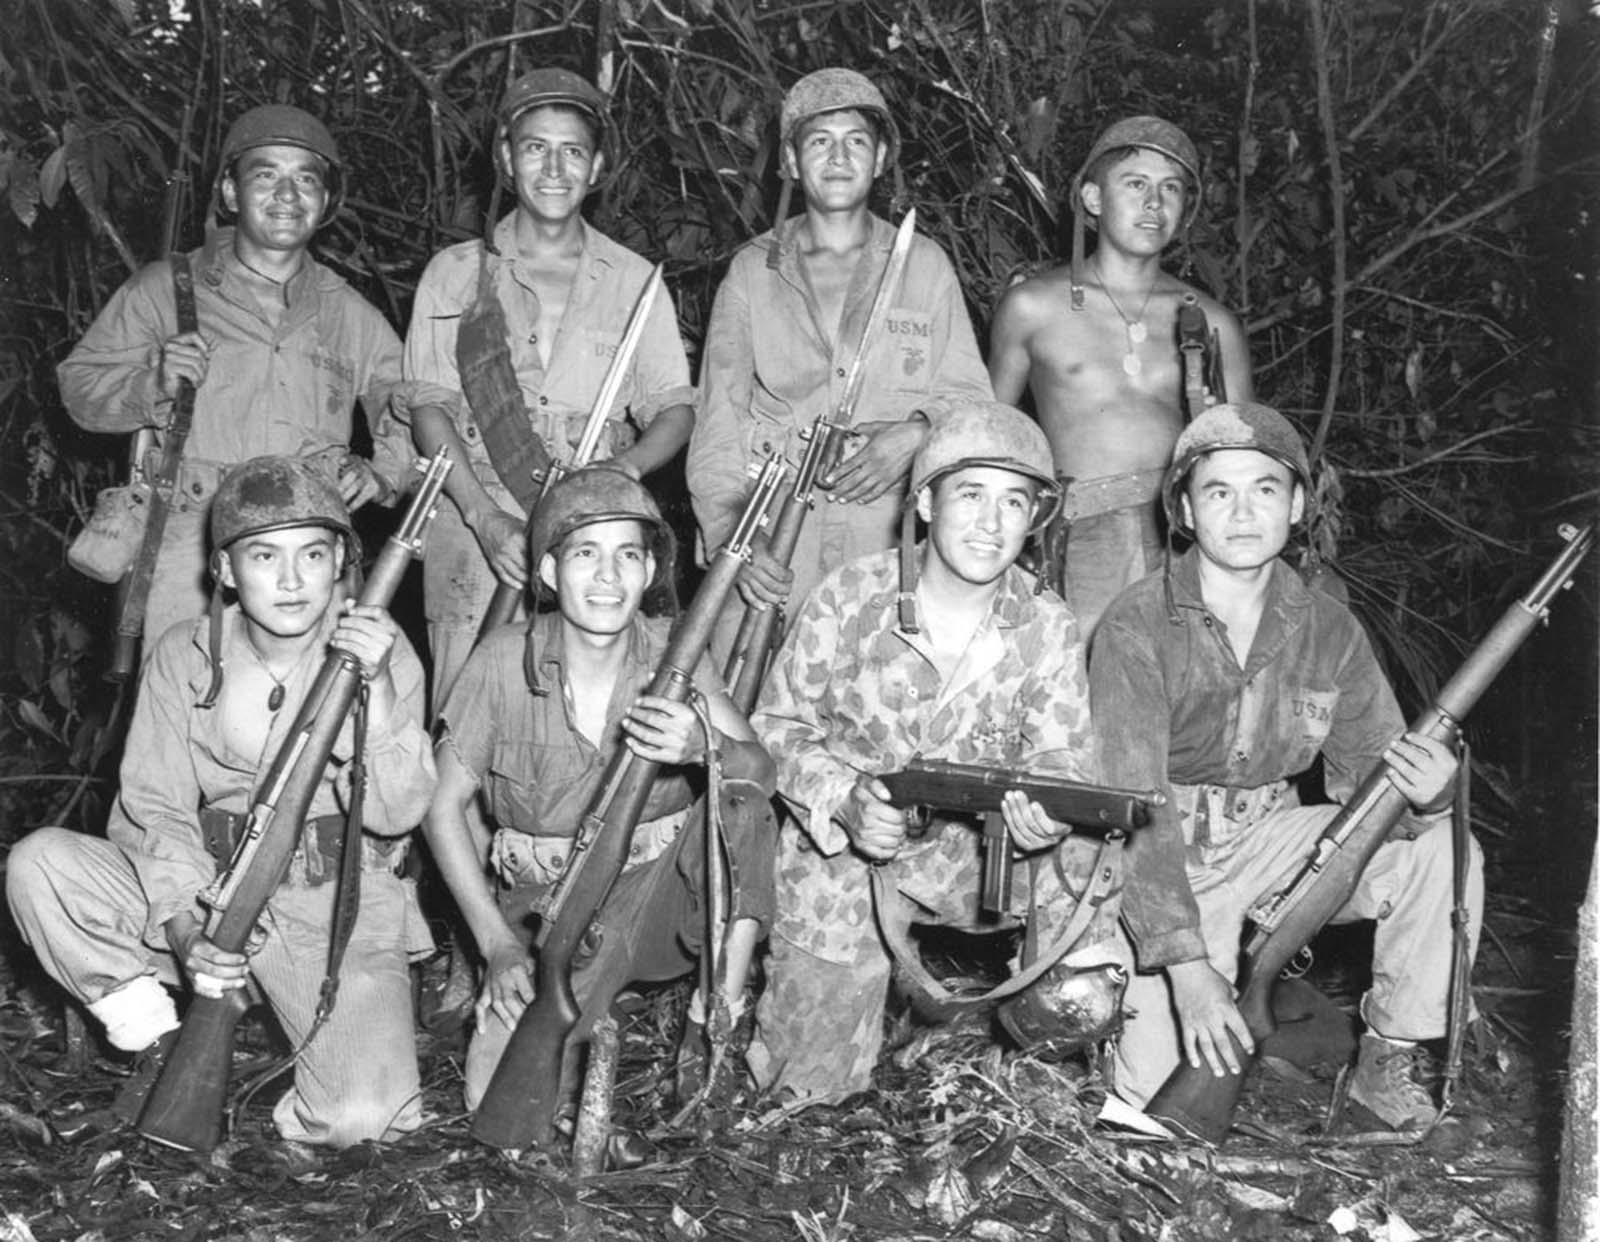 Code talkers with a Marine signal unit on Bougainville. Front row, left to right: Privates Earl Johnny, Kee Etsicitty, John V. Goodluck, and Private First Class David Jordan. Back row: Privates Jack C. Morgan, George H. Kirk, Tom H. Jones, and Corporal Henry Bake, Jr. December, 1943.